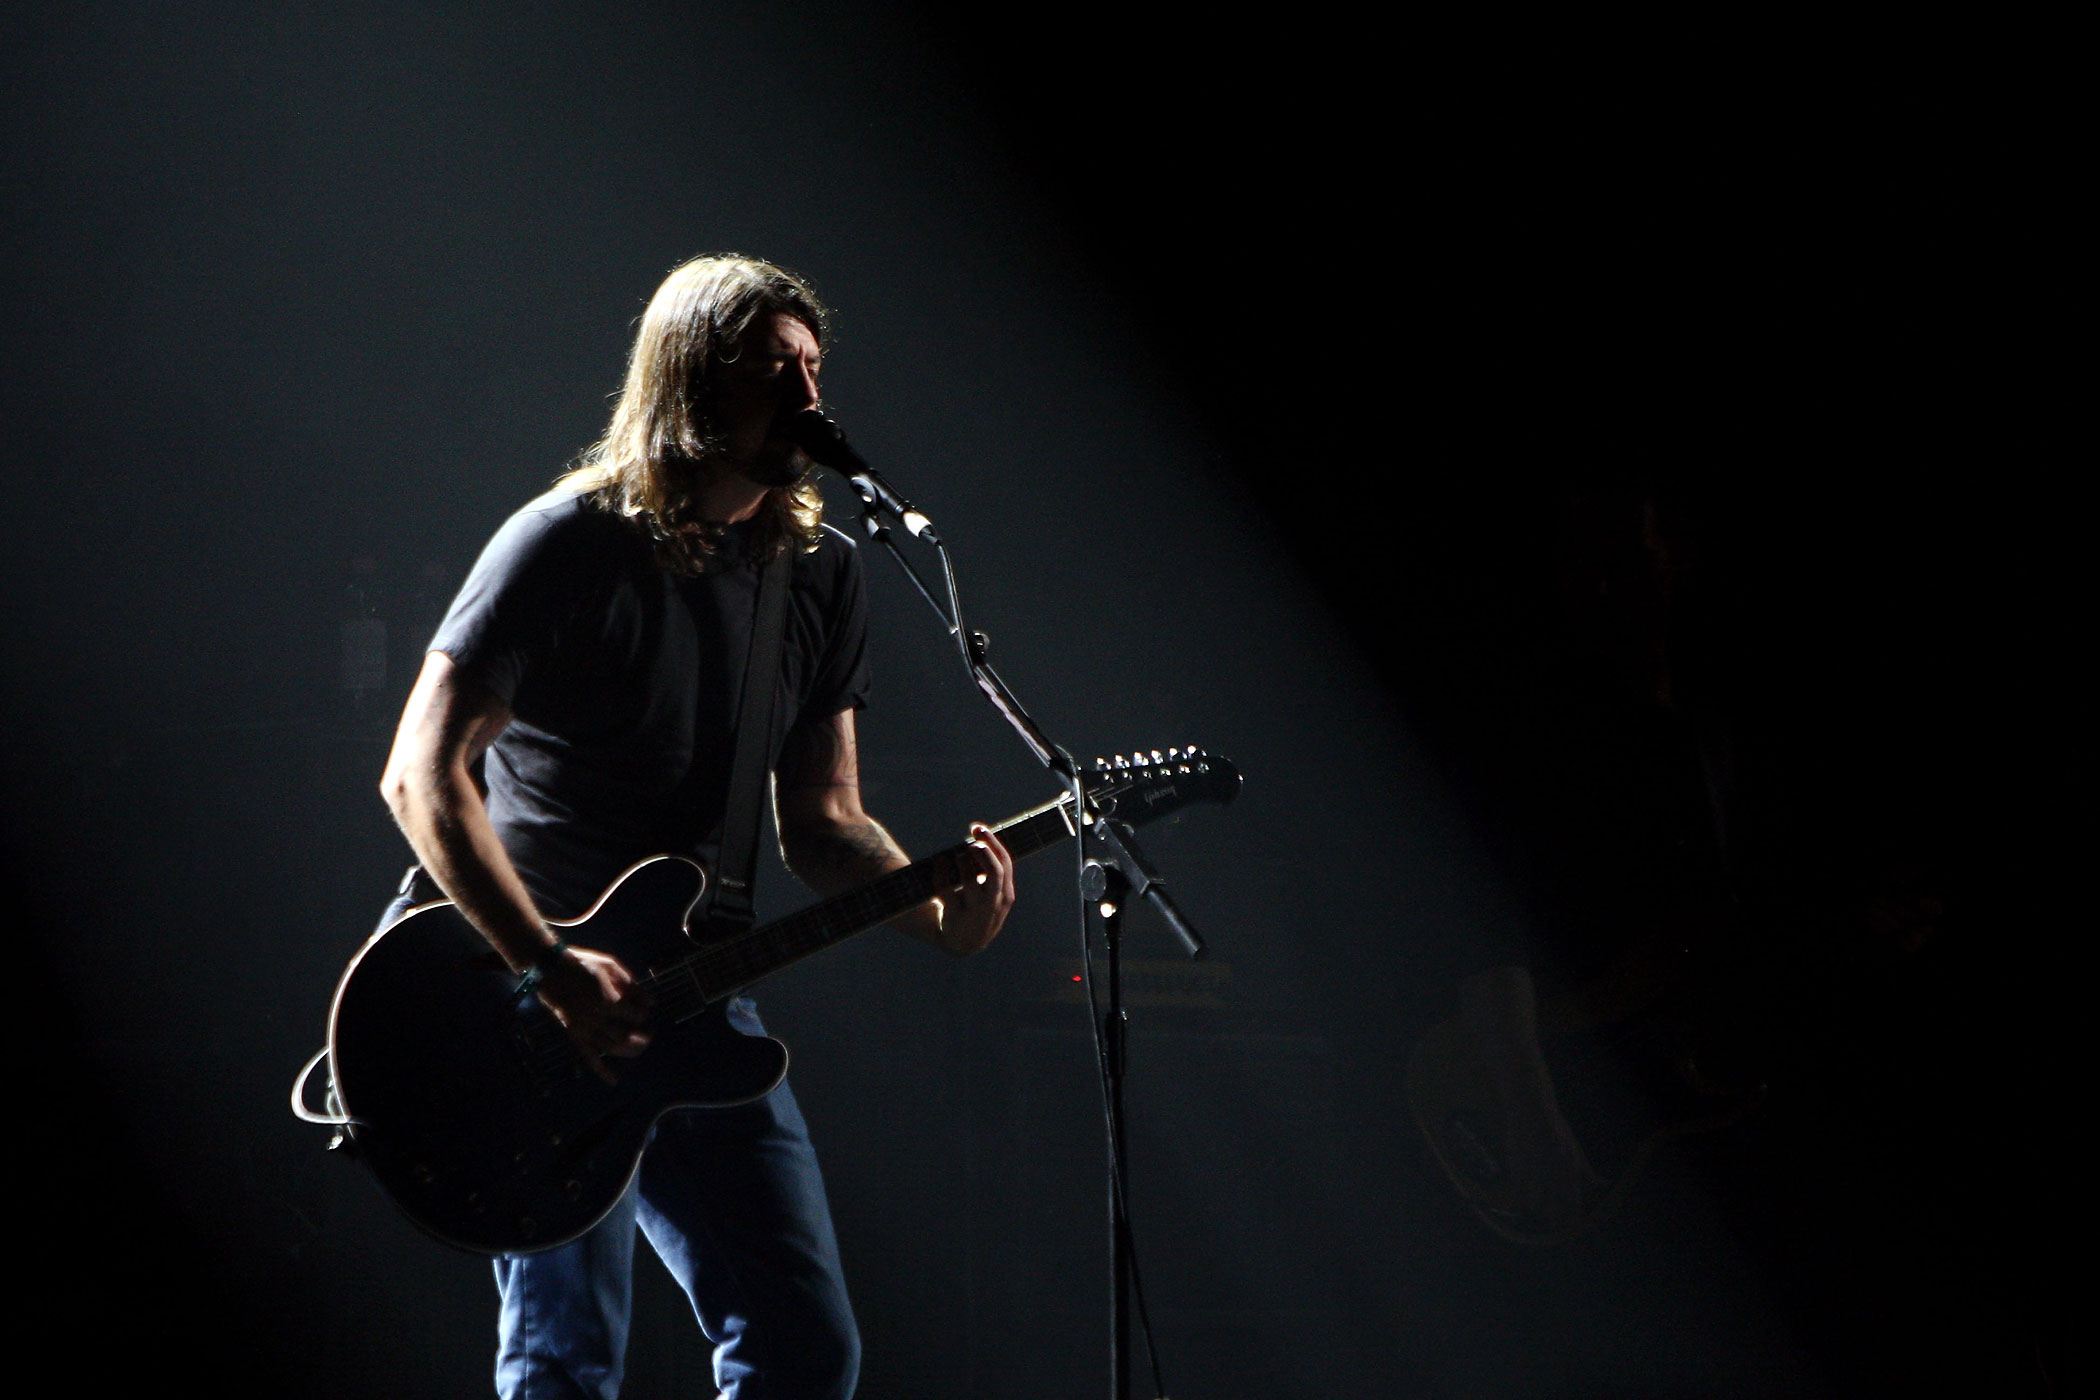 Dave Grohl of the Foo Fighters rehearses ahead of the MTV Europe Music Awards 2009 at the O2 Arena on November 4, 2009 in Berlin, Germany.